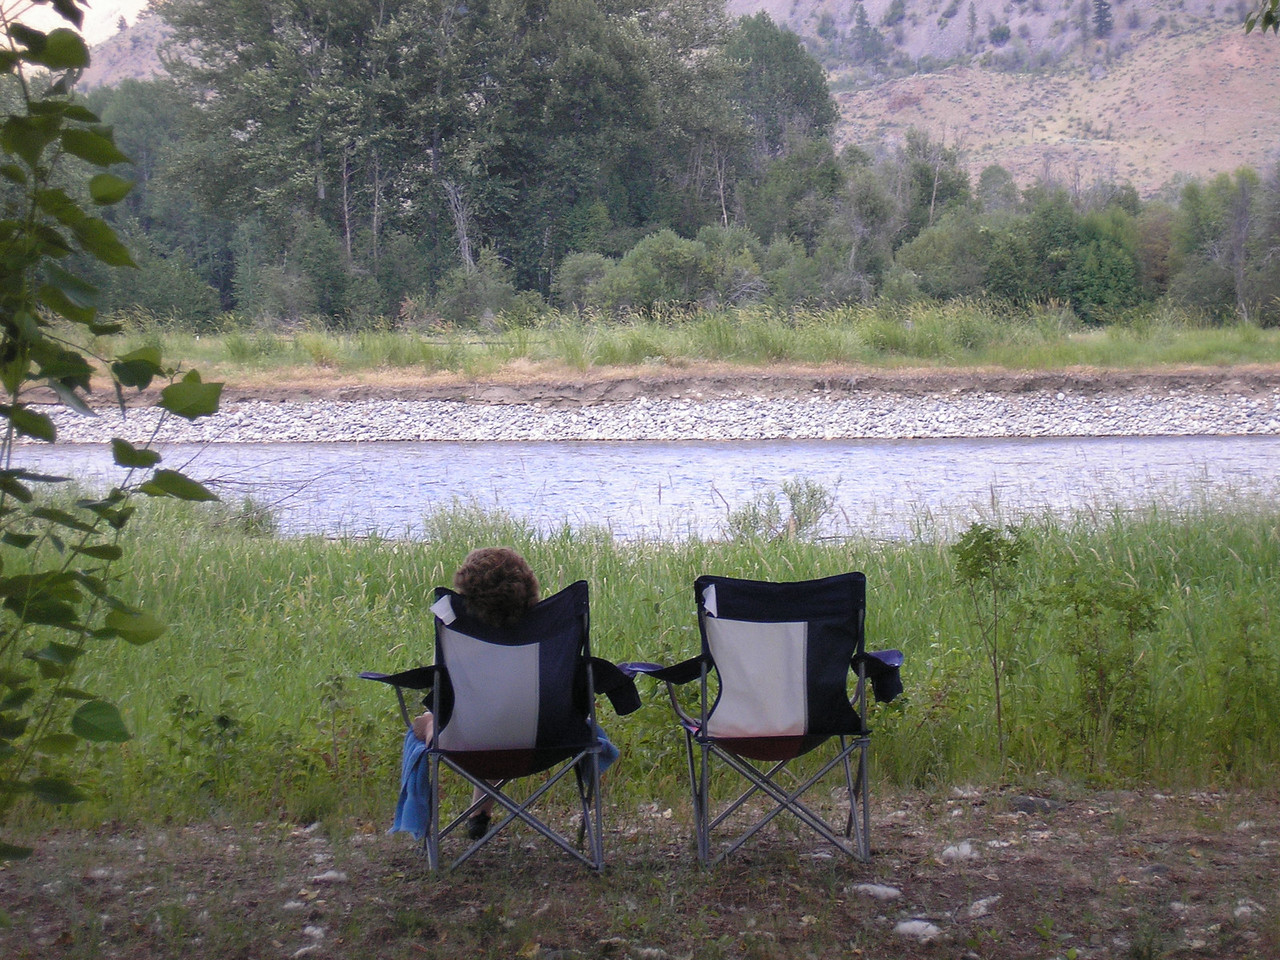 Sitting by the Methow River in Eastern Washington State